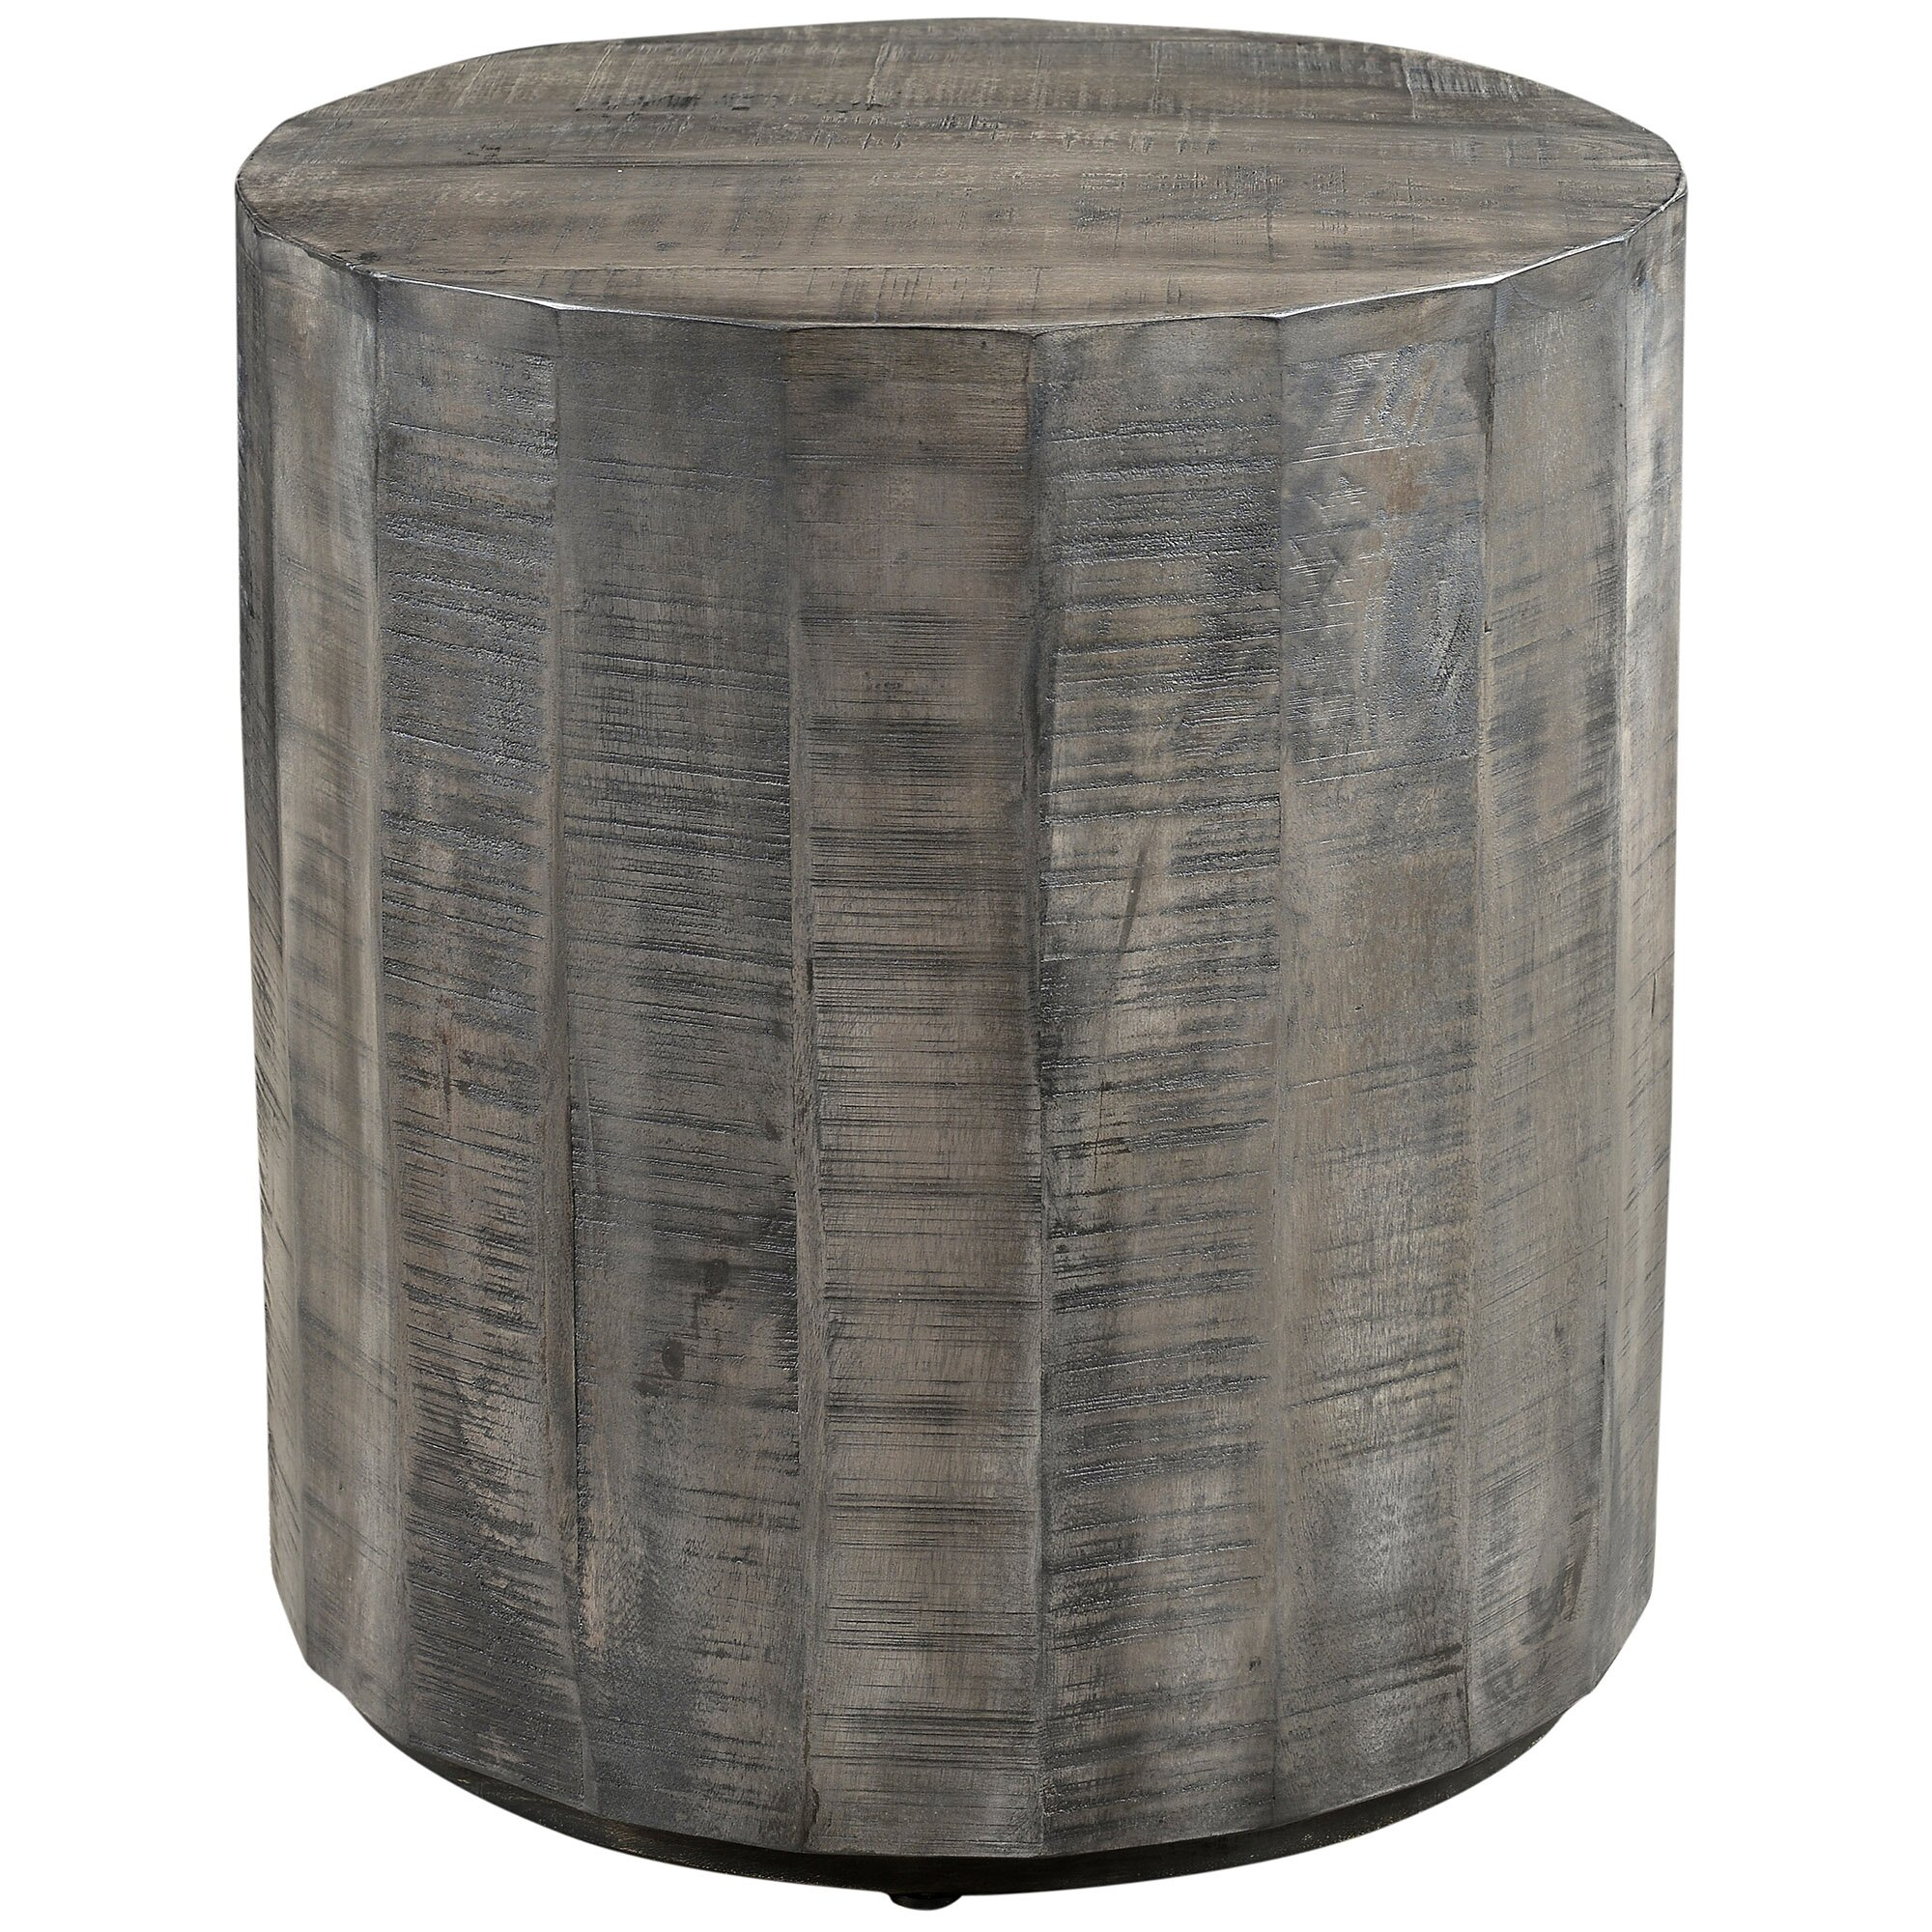 Mango Wood Coffee Table Distressed Gray: !nspire End Table